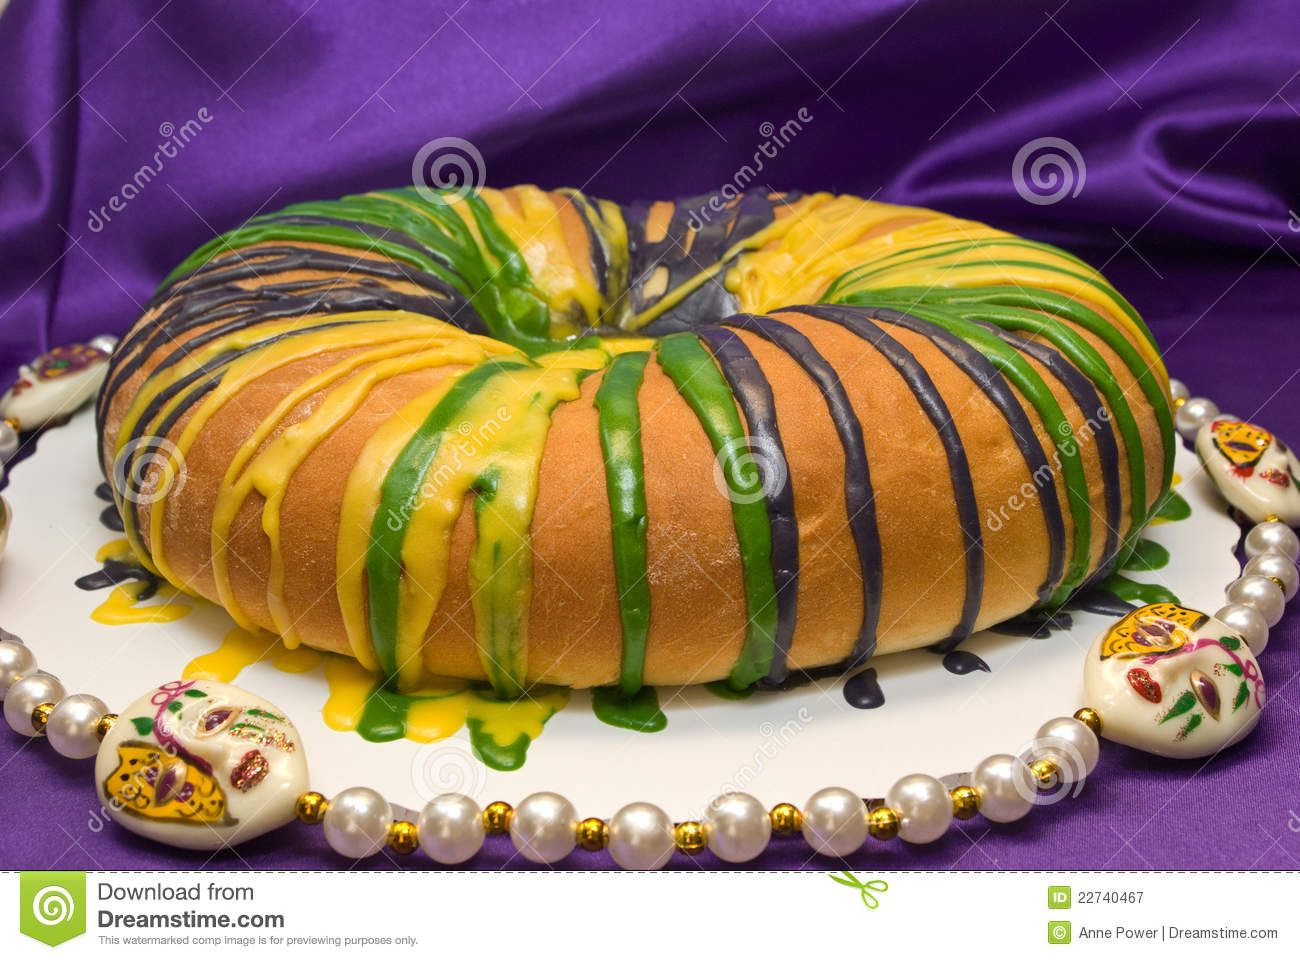 Mardi Gras King Cake Stock Image Image Of Glazed